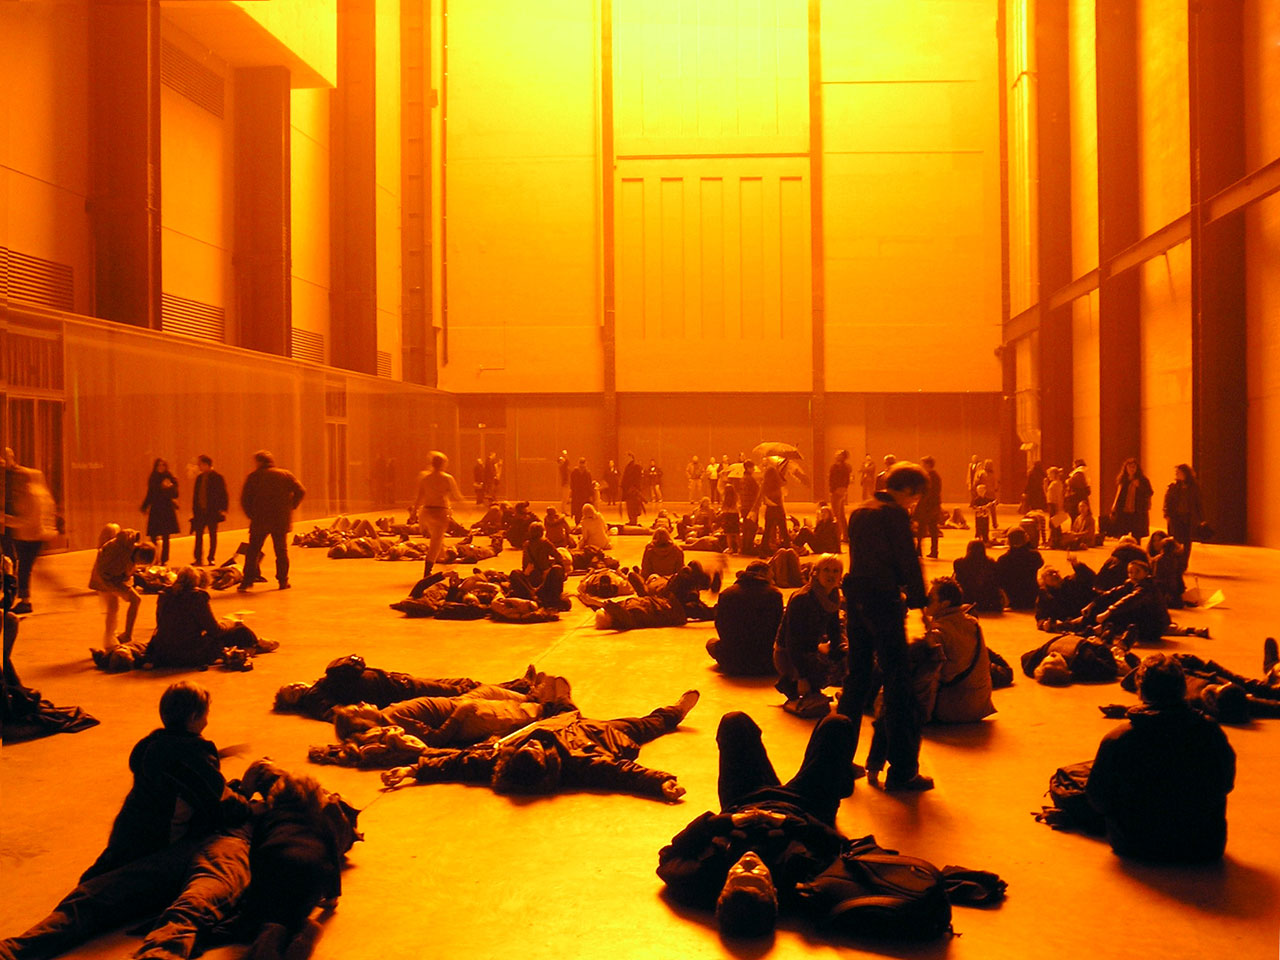 Olafur Eliasson, The Weather Project. Turbine Hall of Tate Modern. Via: Wikimedia Commons